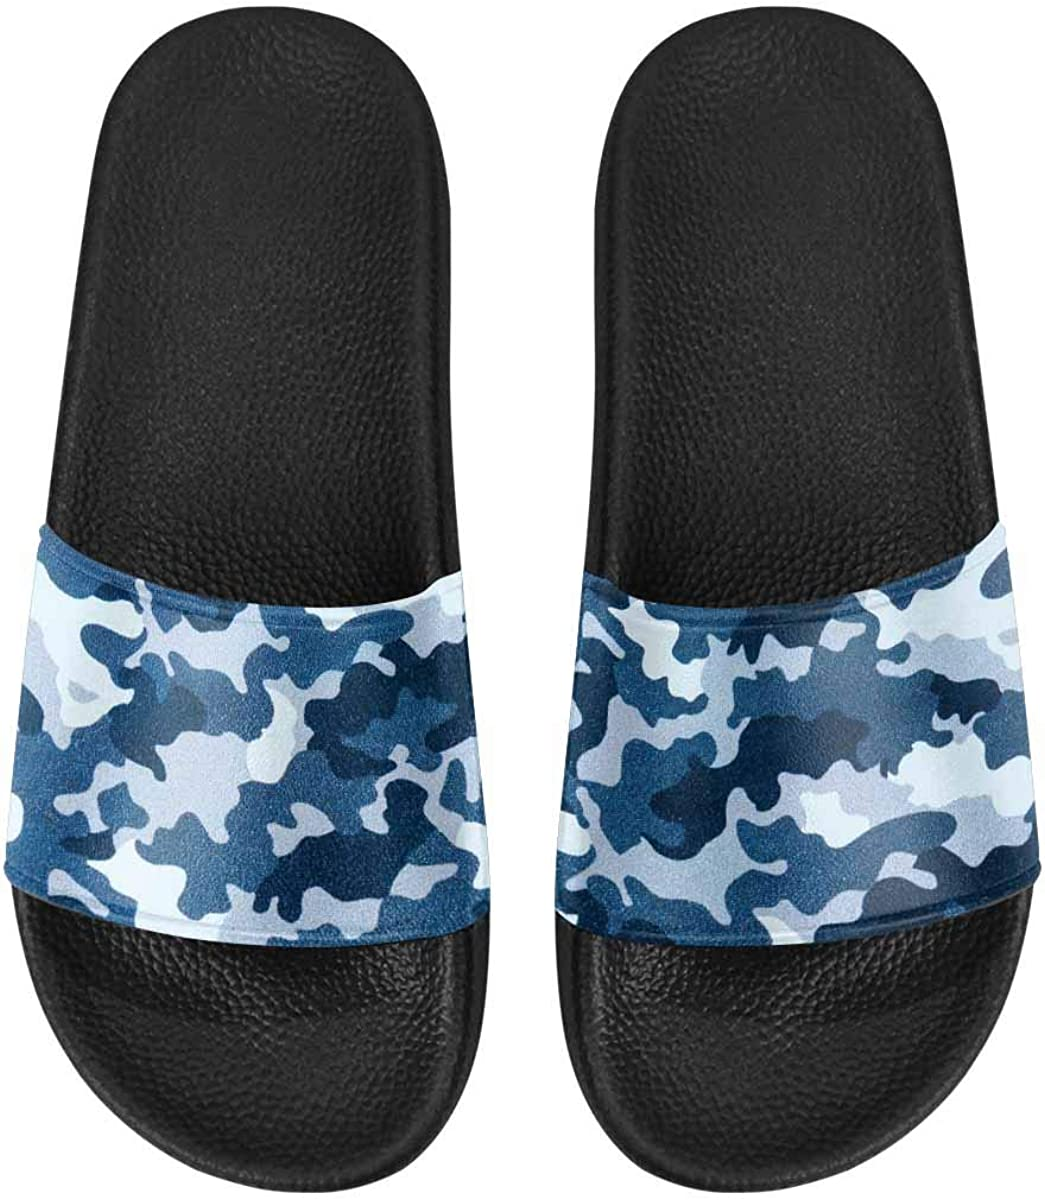 InterestPrint Casual Slipper Sandals for Women with PVC Straps Fashion Camo Pattern